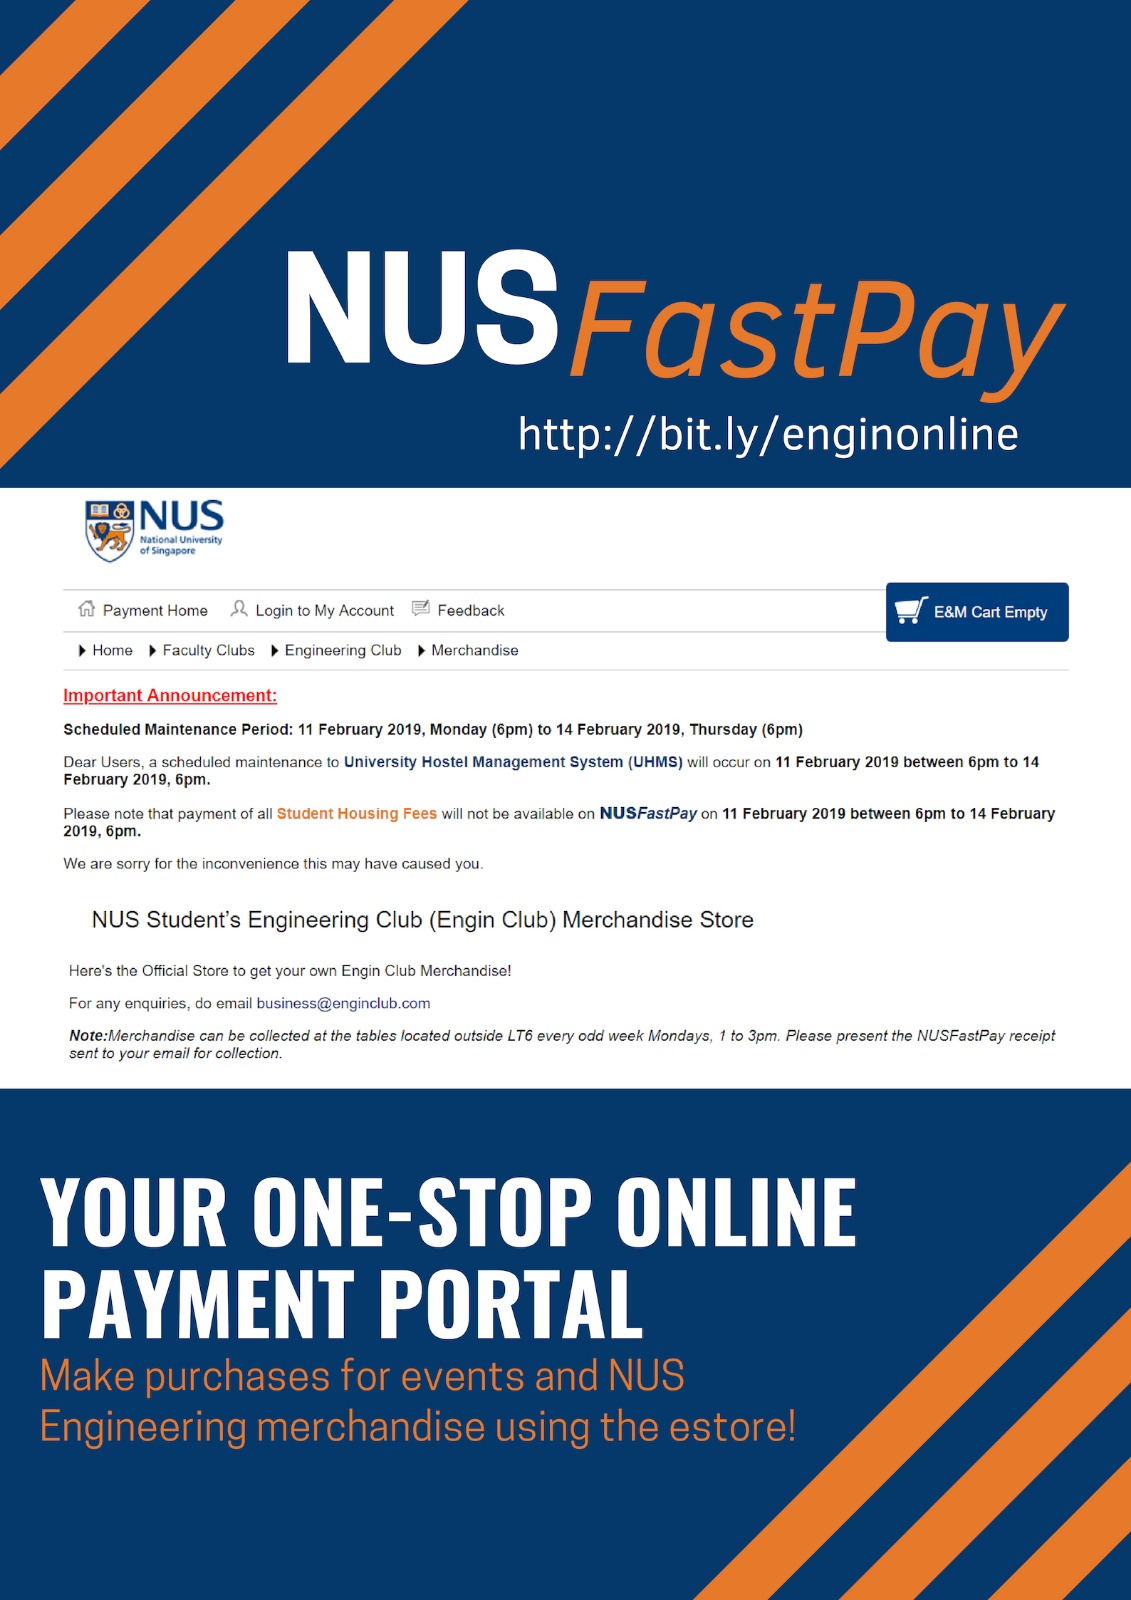 NUS FastPay